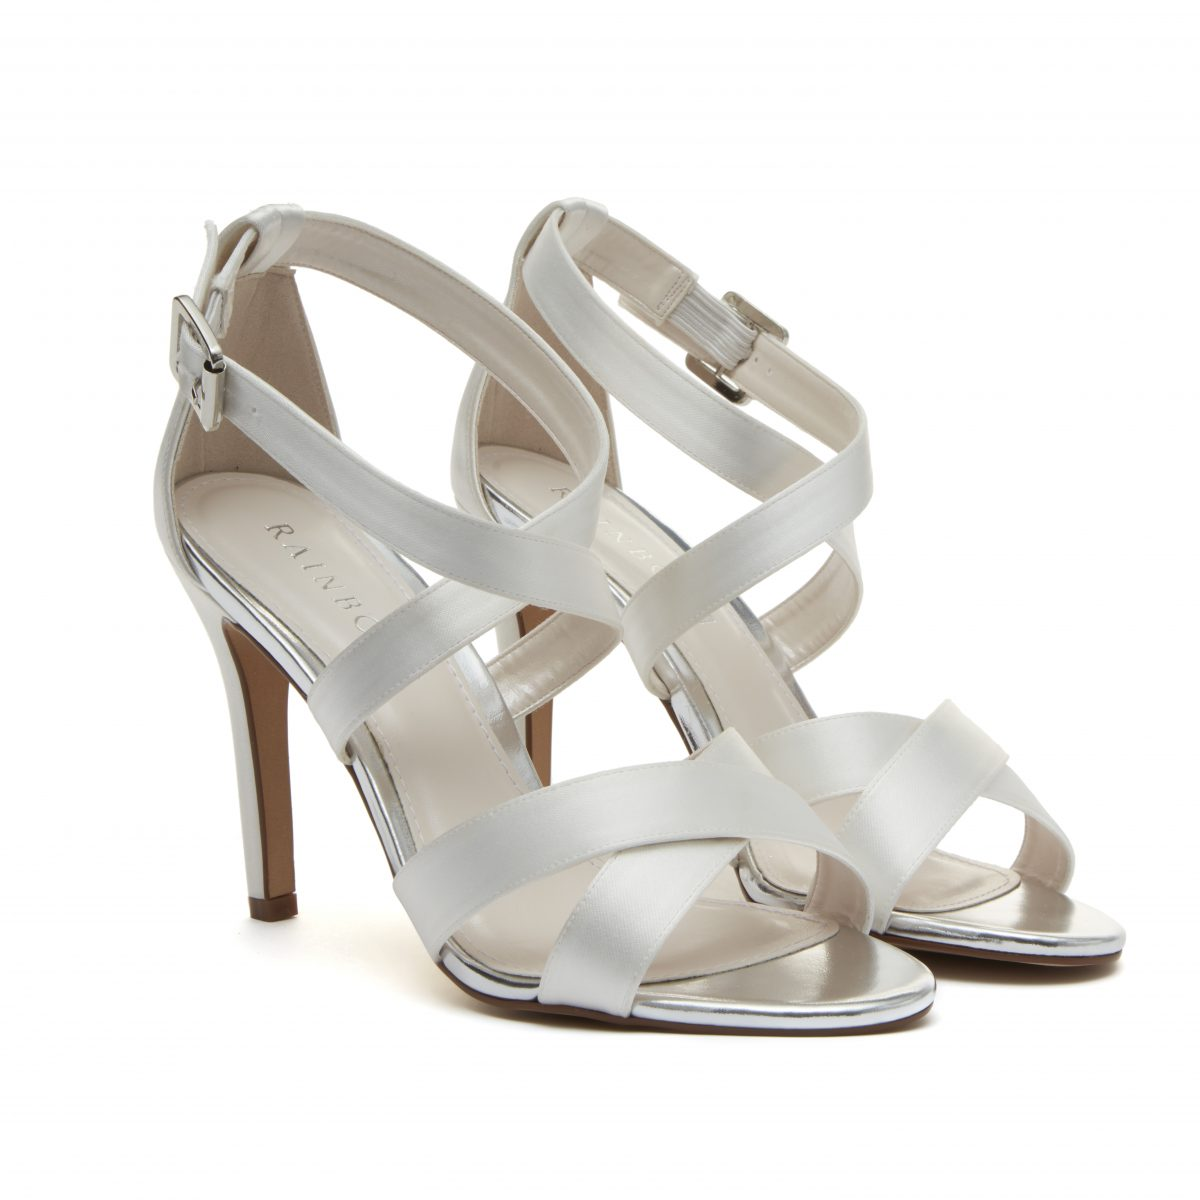 Rainbow Club Reese - Strappy Sandal 1